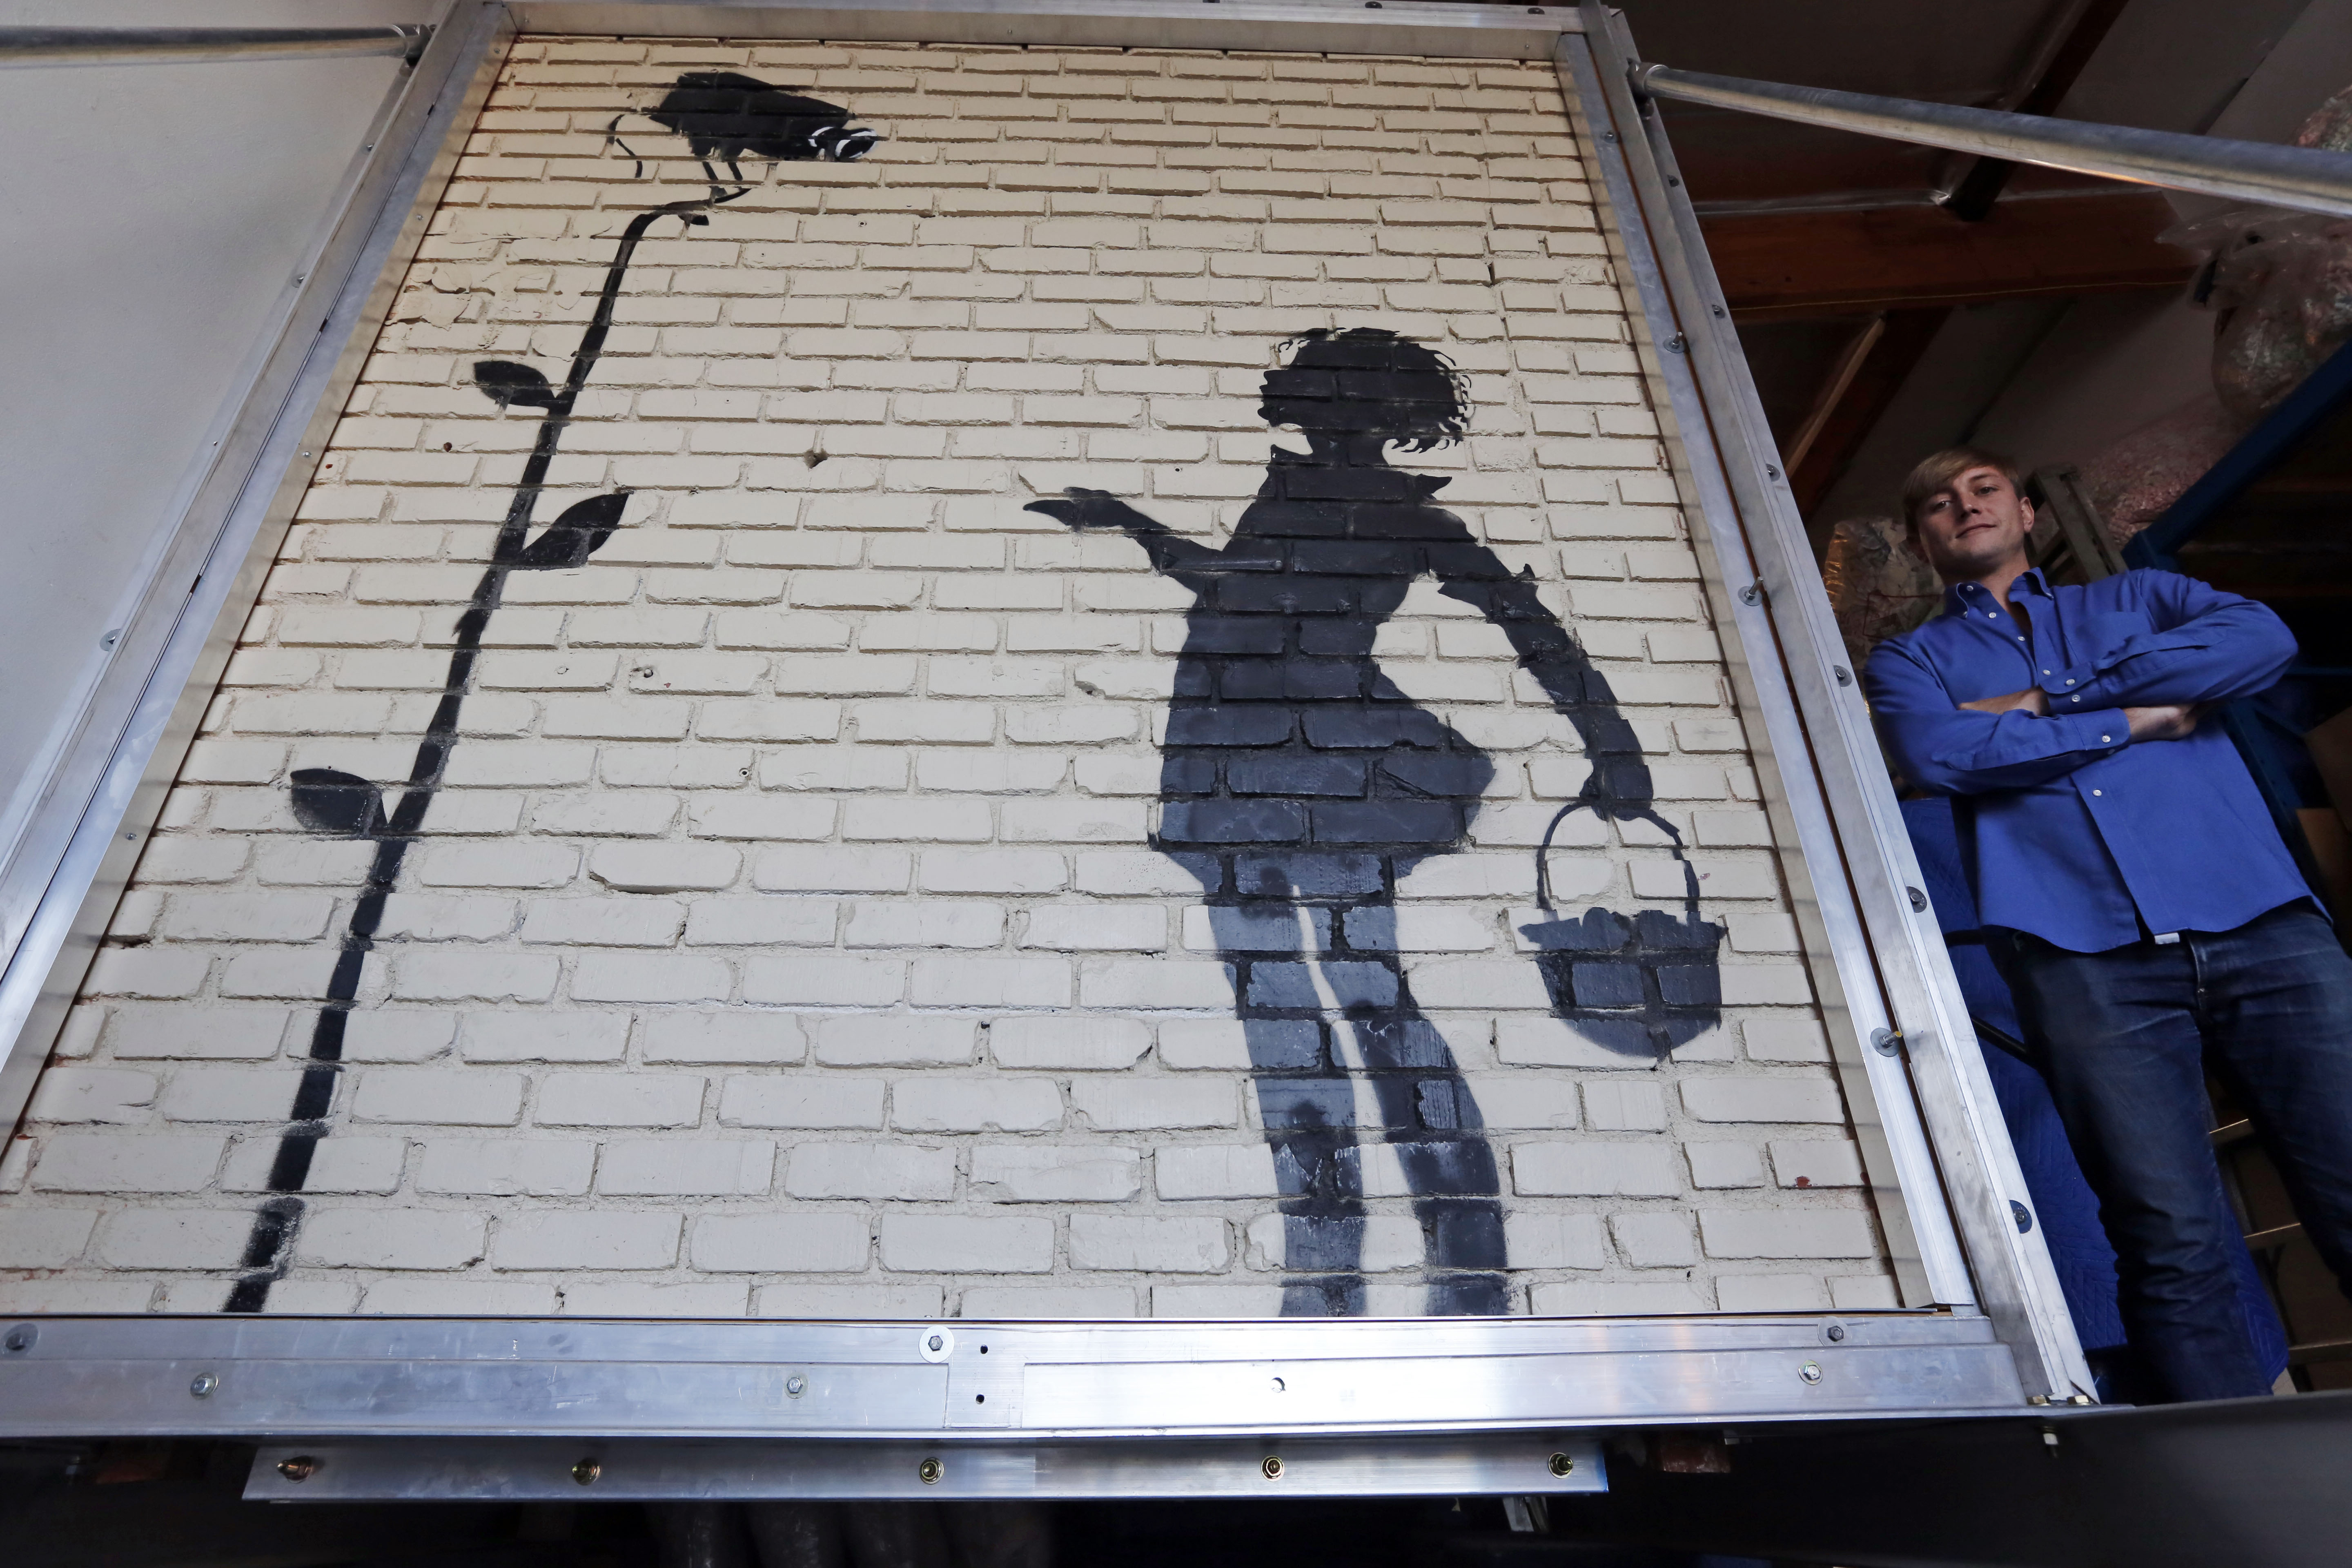 Beverly hills ca banksy mural fetches 209k at for Banksy mural sold